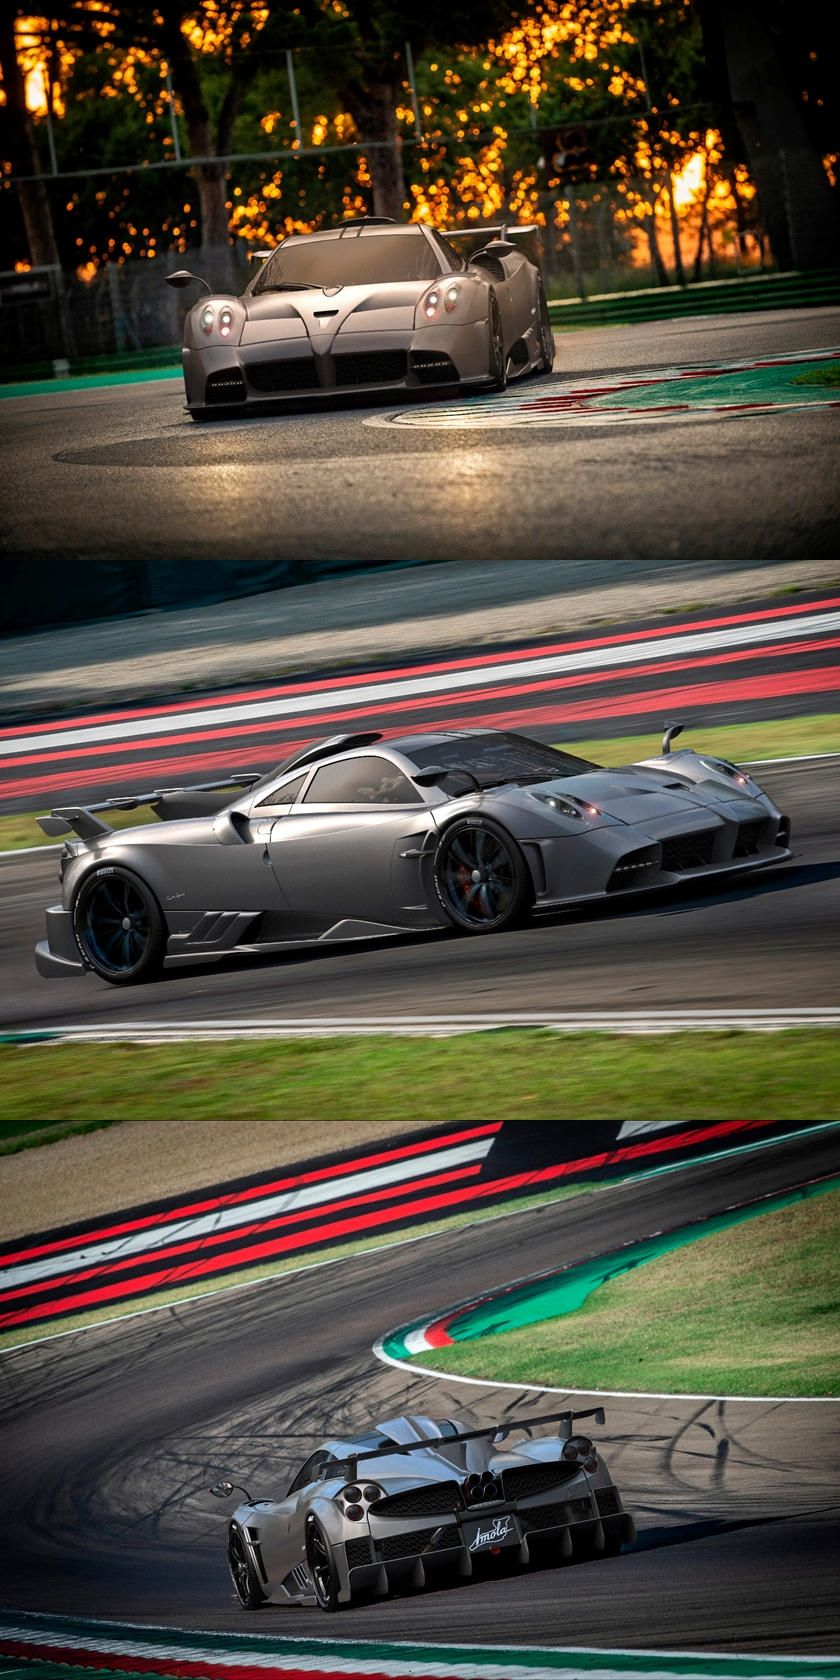 Pagani Imola Is A 5 5 Million Obsessively Engineered Hypercar The Pagani Imola Named For The Famous Italian Road Course Shows A N In 2020 Pagani Imola Super Cars